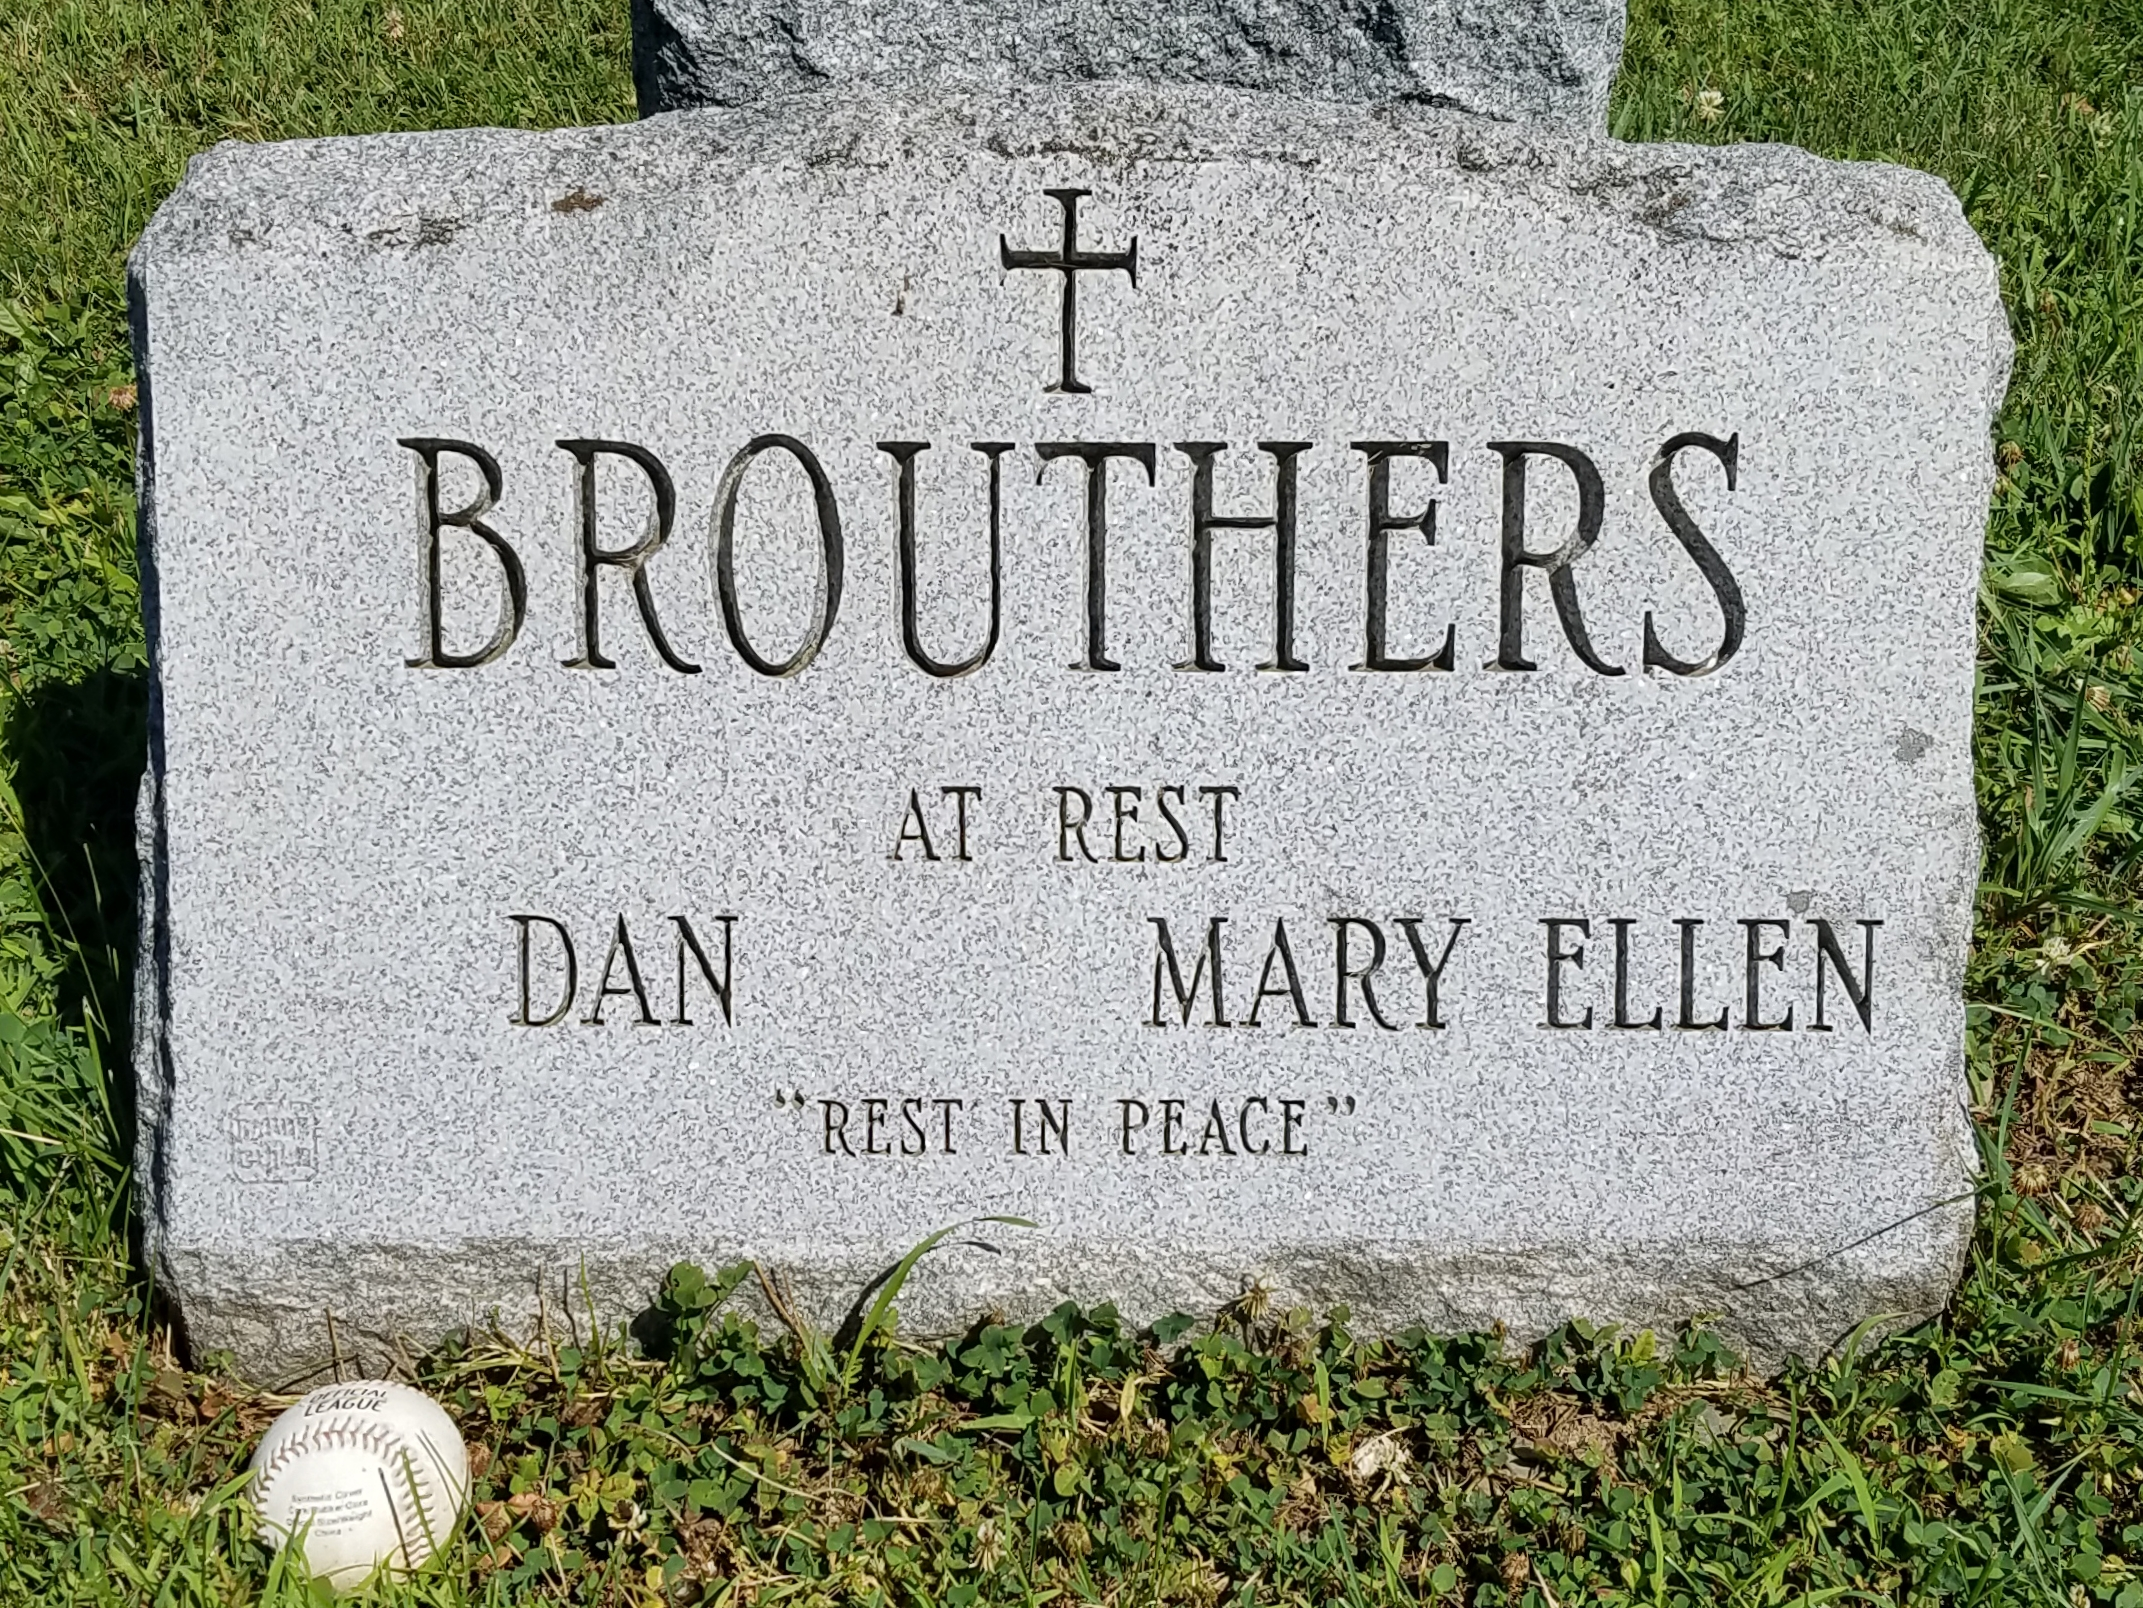 grave of dan brouthers.jpg